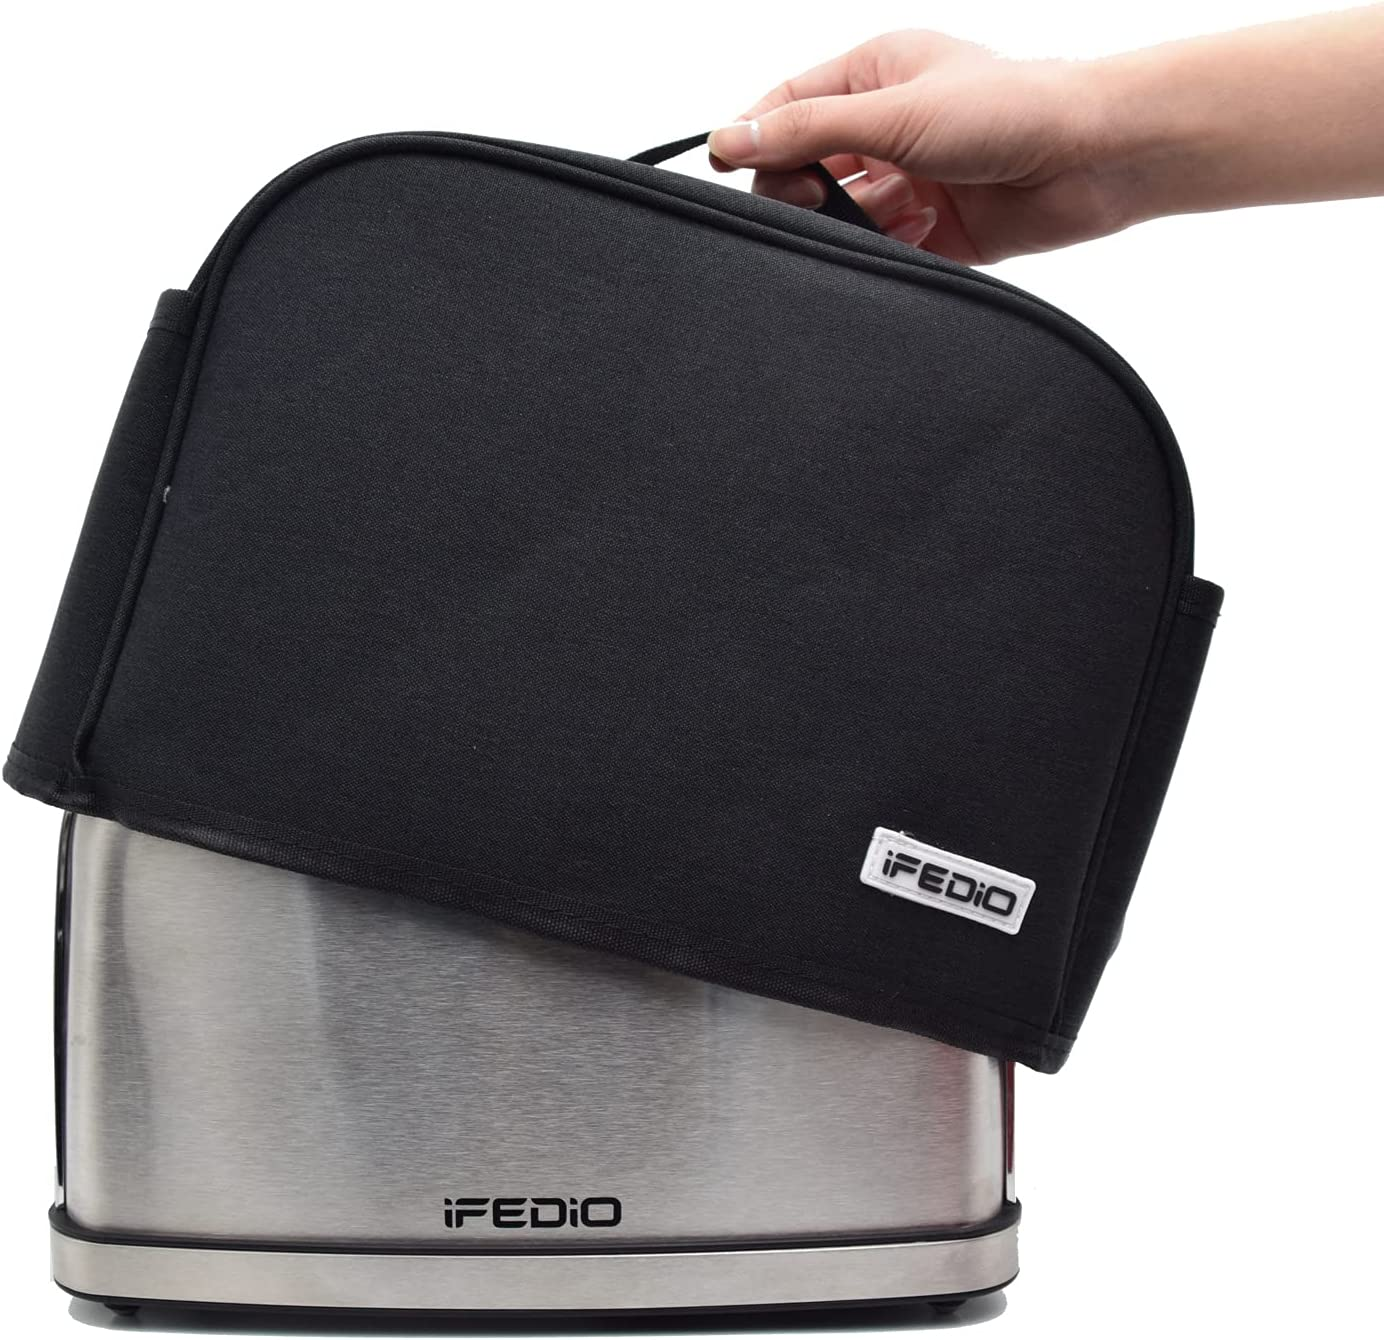 iFedio 2 Slice Toaster Cover with Pockets, Dust And Fingerprint Protection/Machine Washable/Toaster Machine Cover Can Hold Jam Spreader Knife & Toaster Tongs (Black)